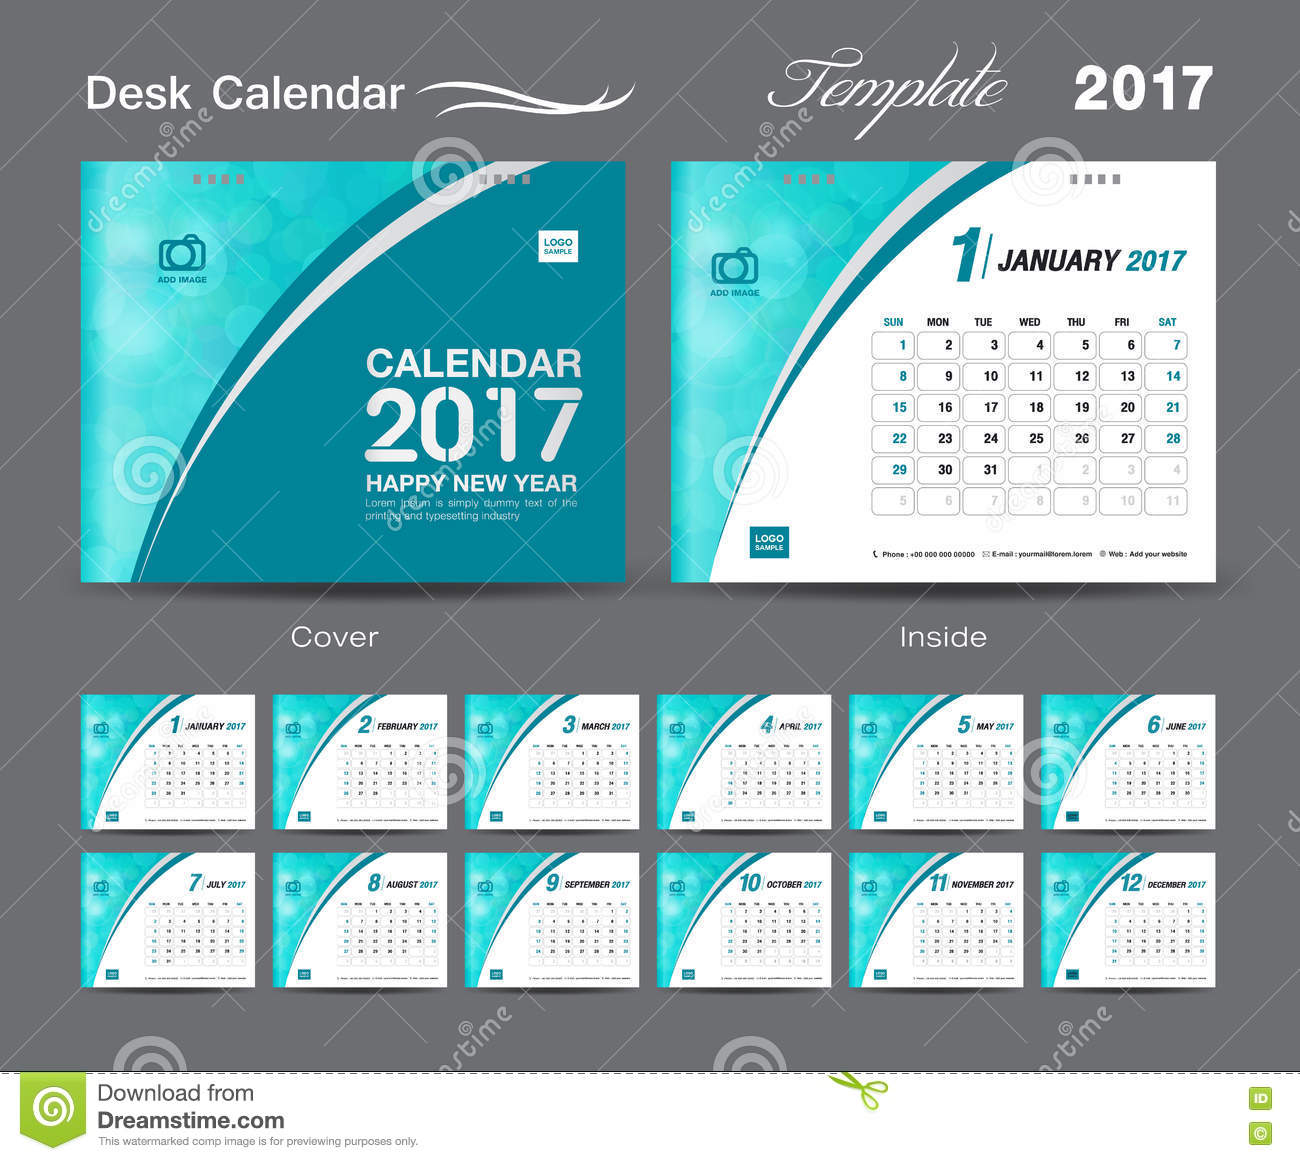 Calendar Cover Design 2014 : Desk calendar template design set cover